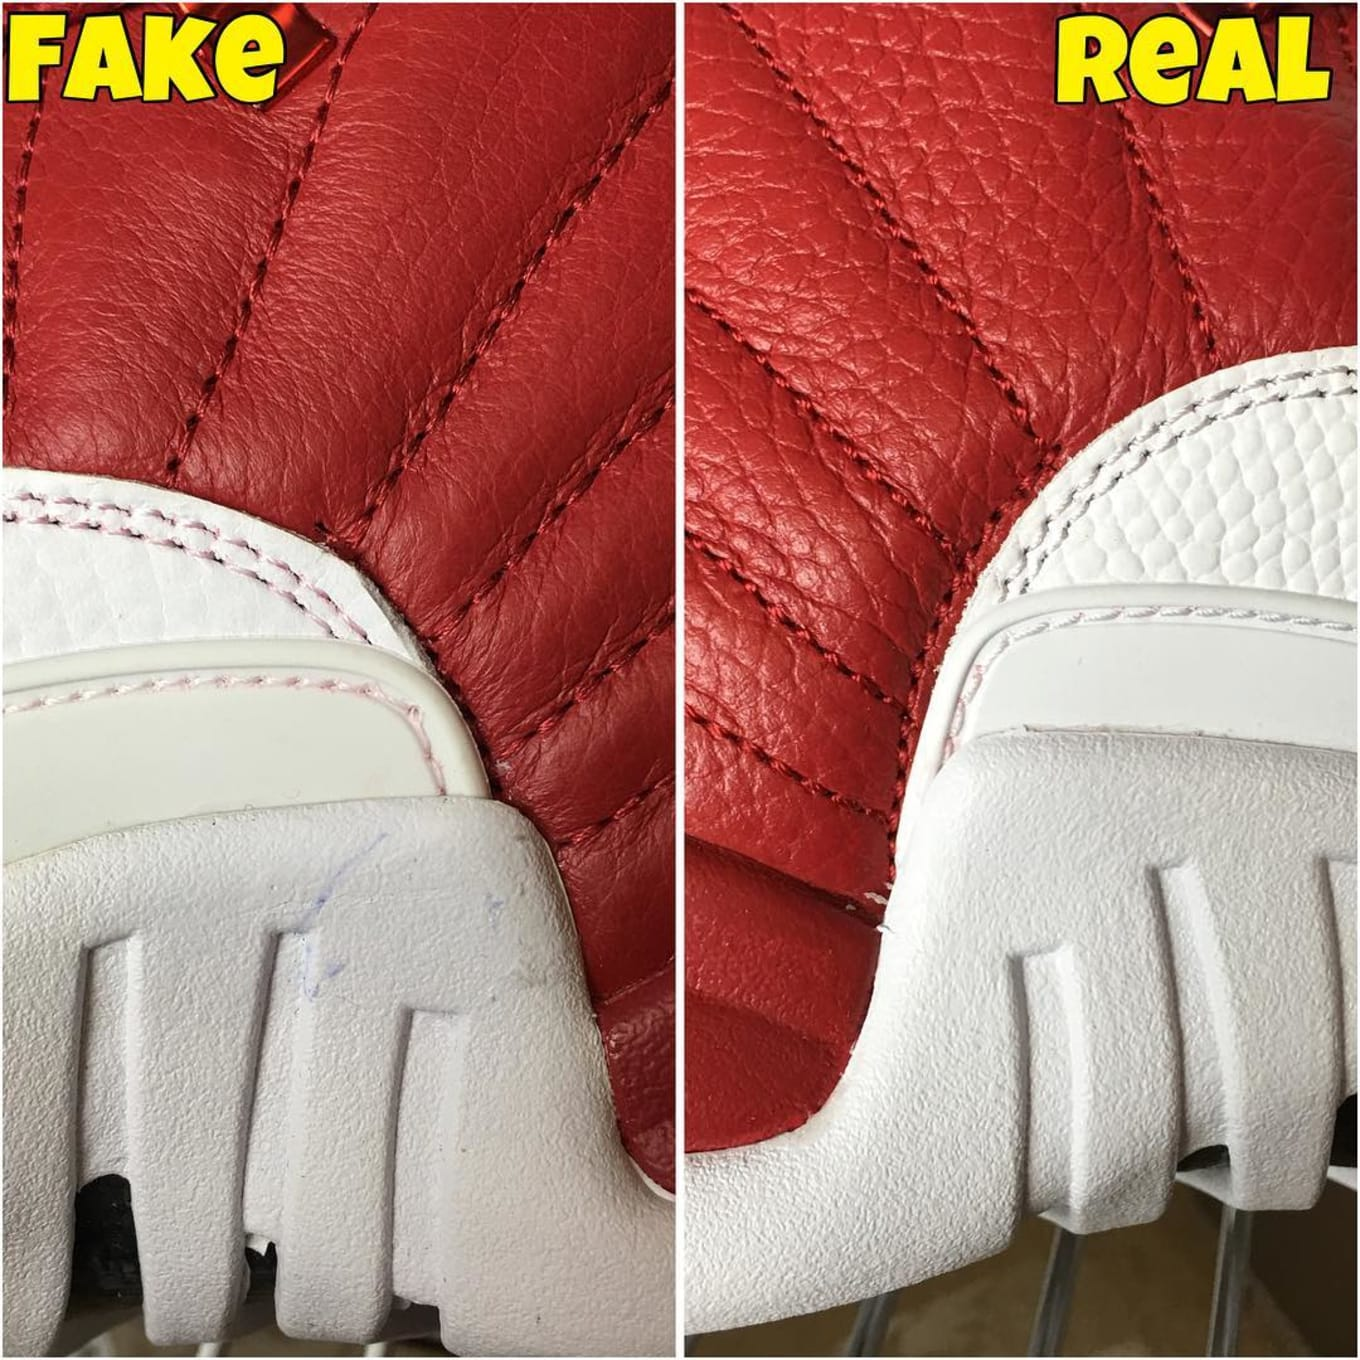 0ad00a9ea611 Air Jordan XII 12 Gym Red Alternate Real Fake Legit Check (8)